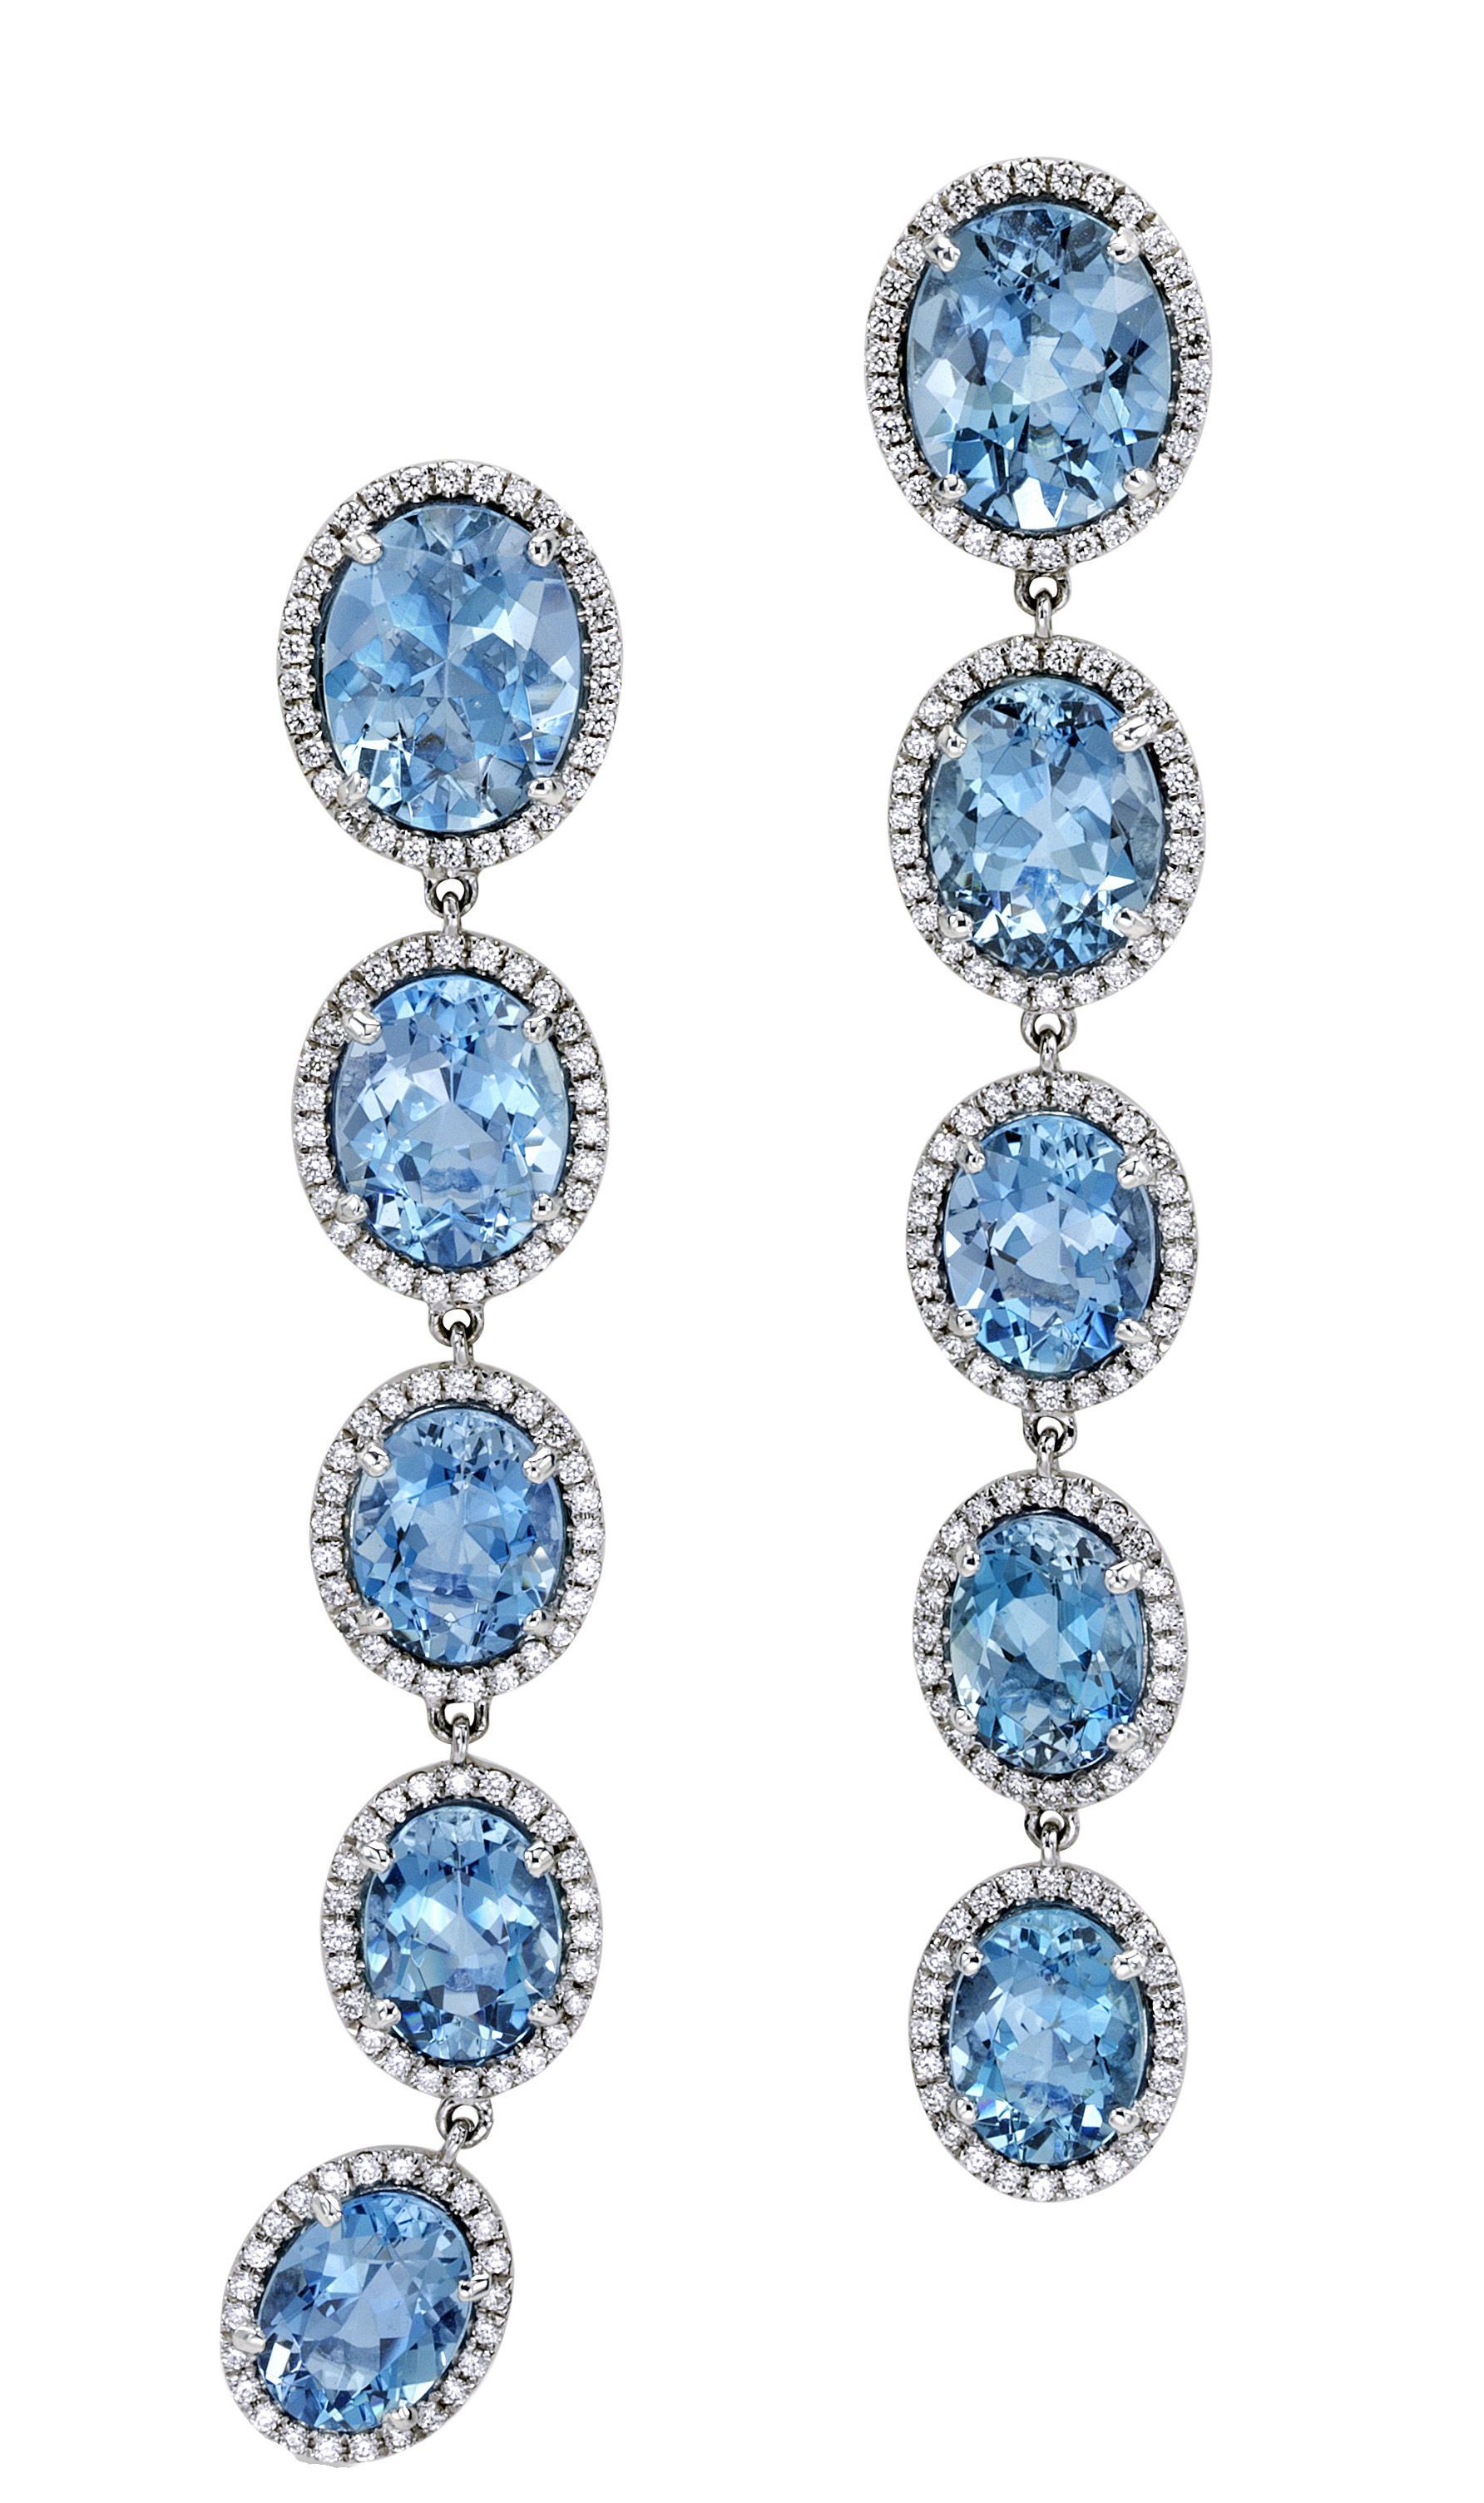 Mish New York Comet Tail Earrings with Aquamarine with white diamond pavé | mishnewyork.com #mishnewyork #mishjewelry